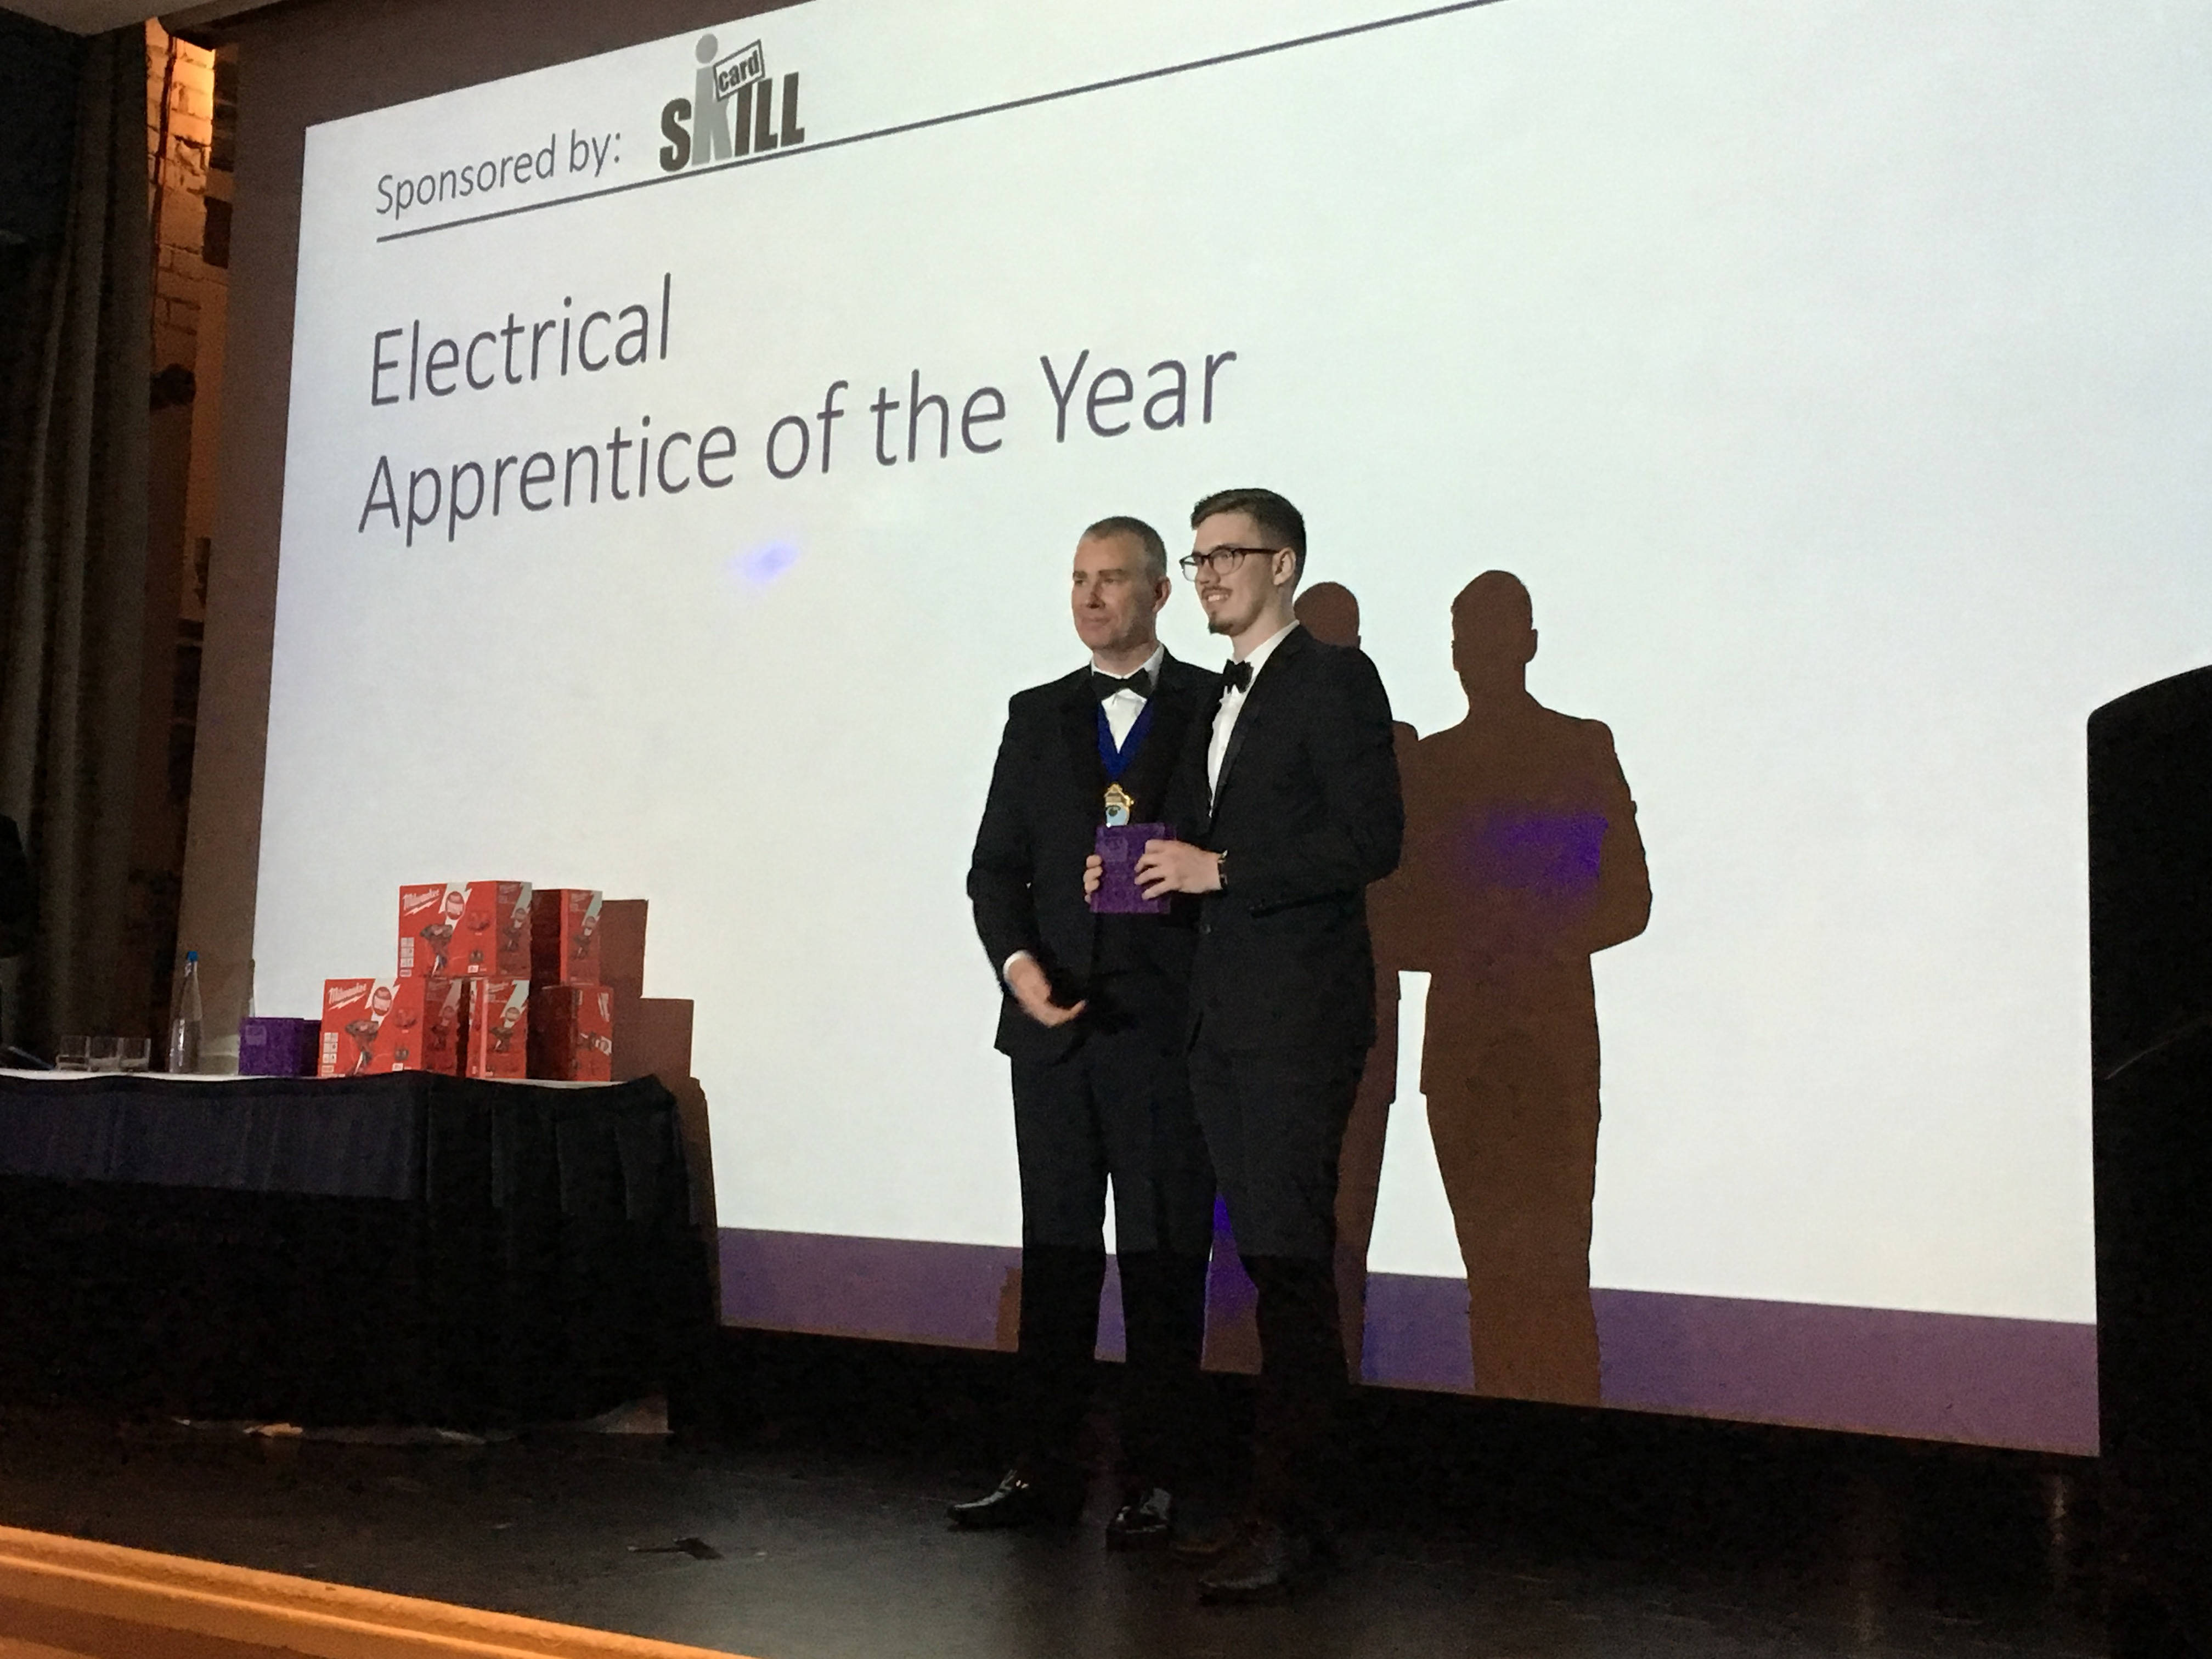 Adam McHaffie - Electrical Apprentice of the Year Winner